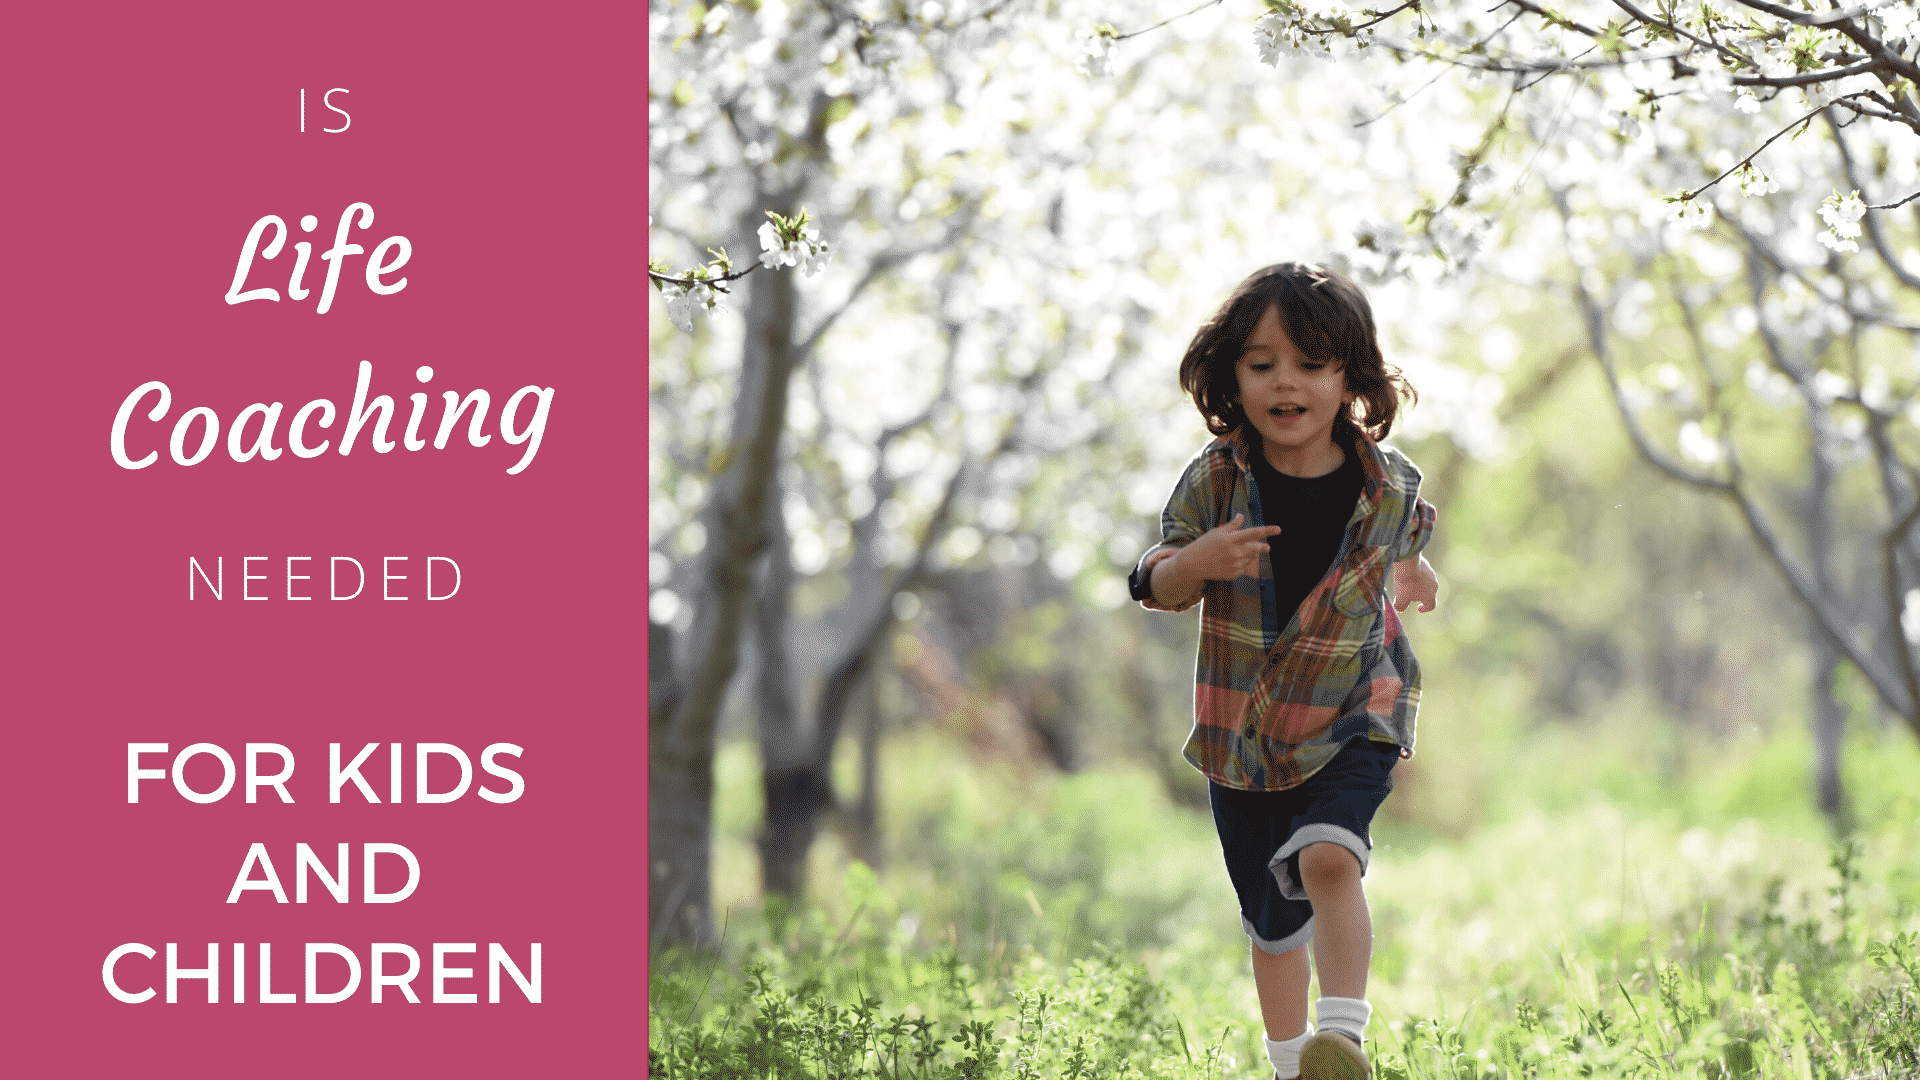 Is Life Coaching Needed For Kids and Children in 2020? Life coaching for kids and children